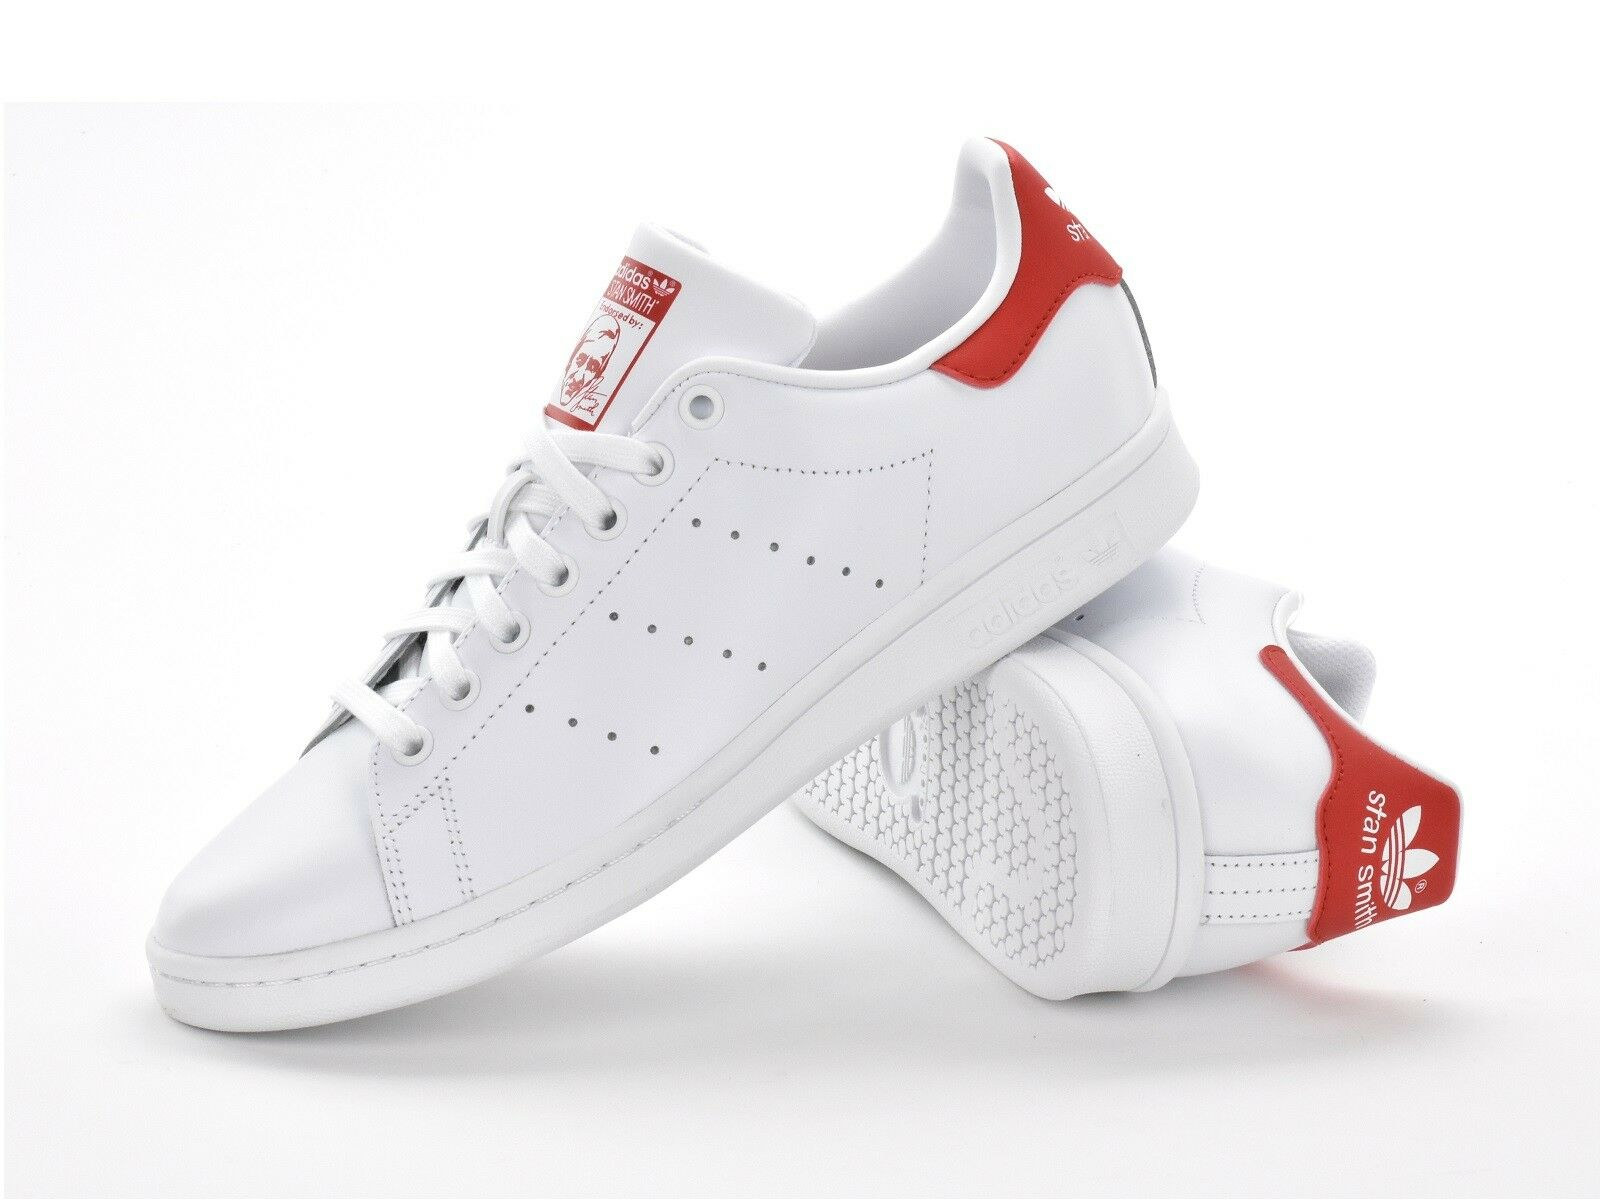 ADIDAS ORIGINALS STAN SMITH - MENS TRAINERS - WHITE RED - M20326 - BRAND NEW